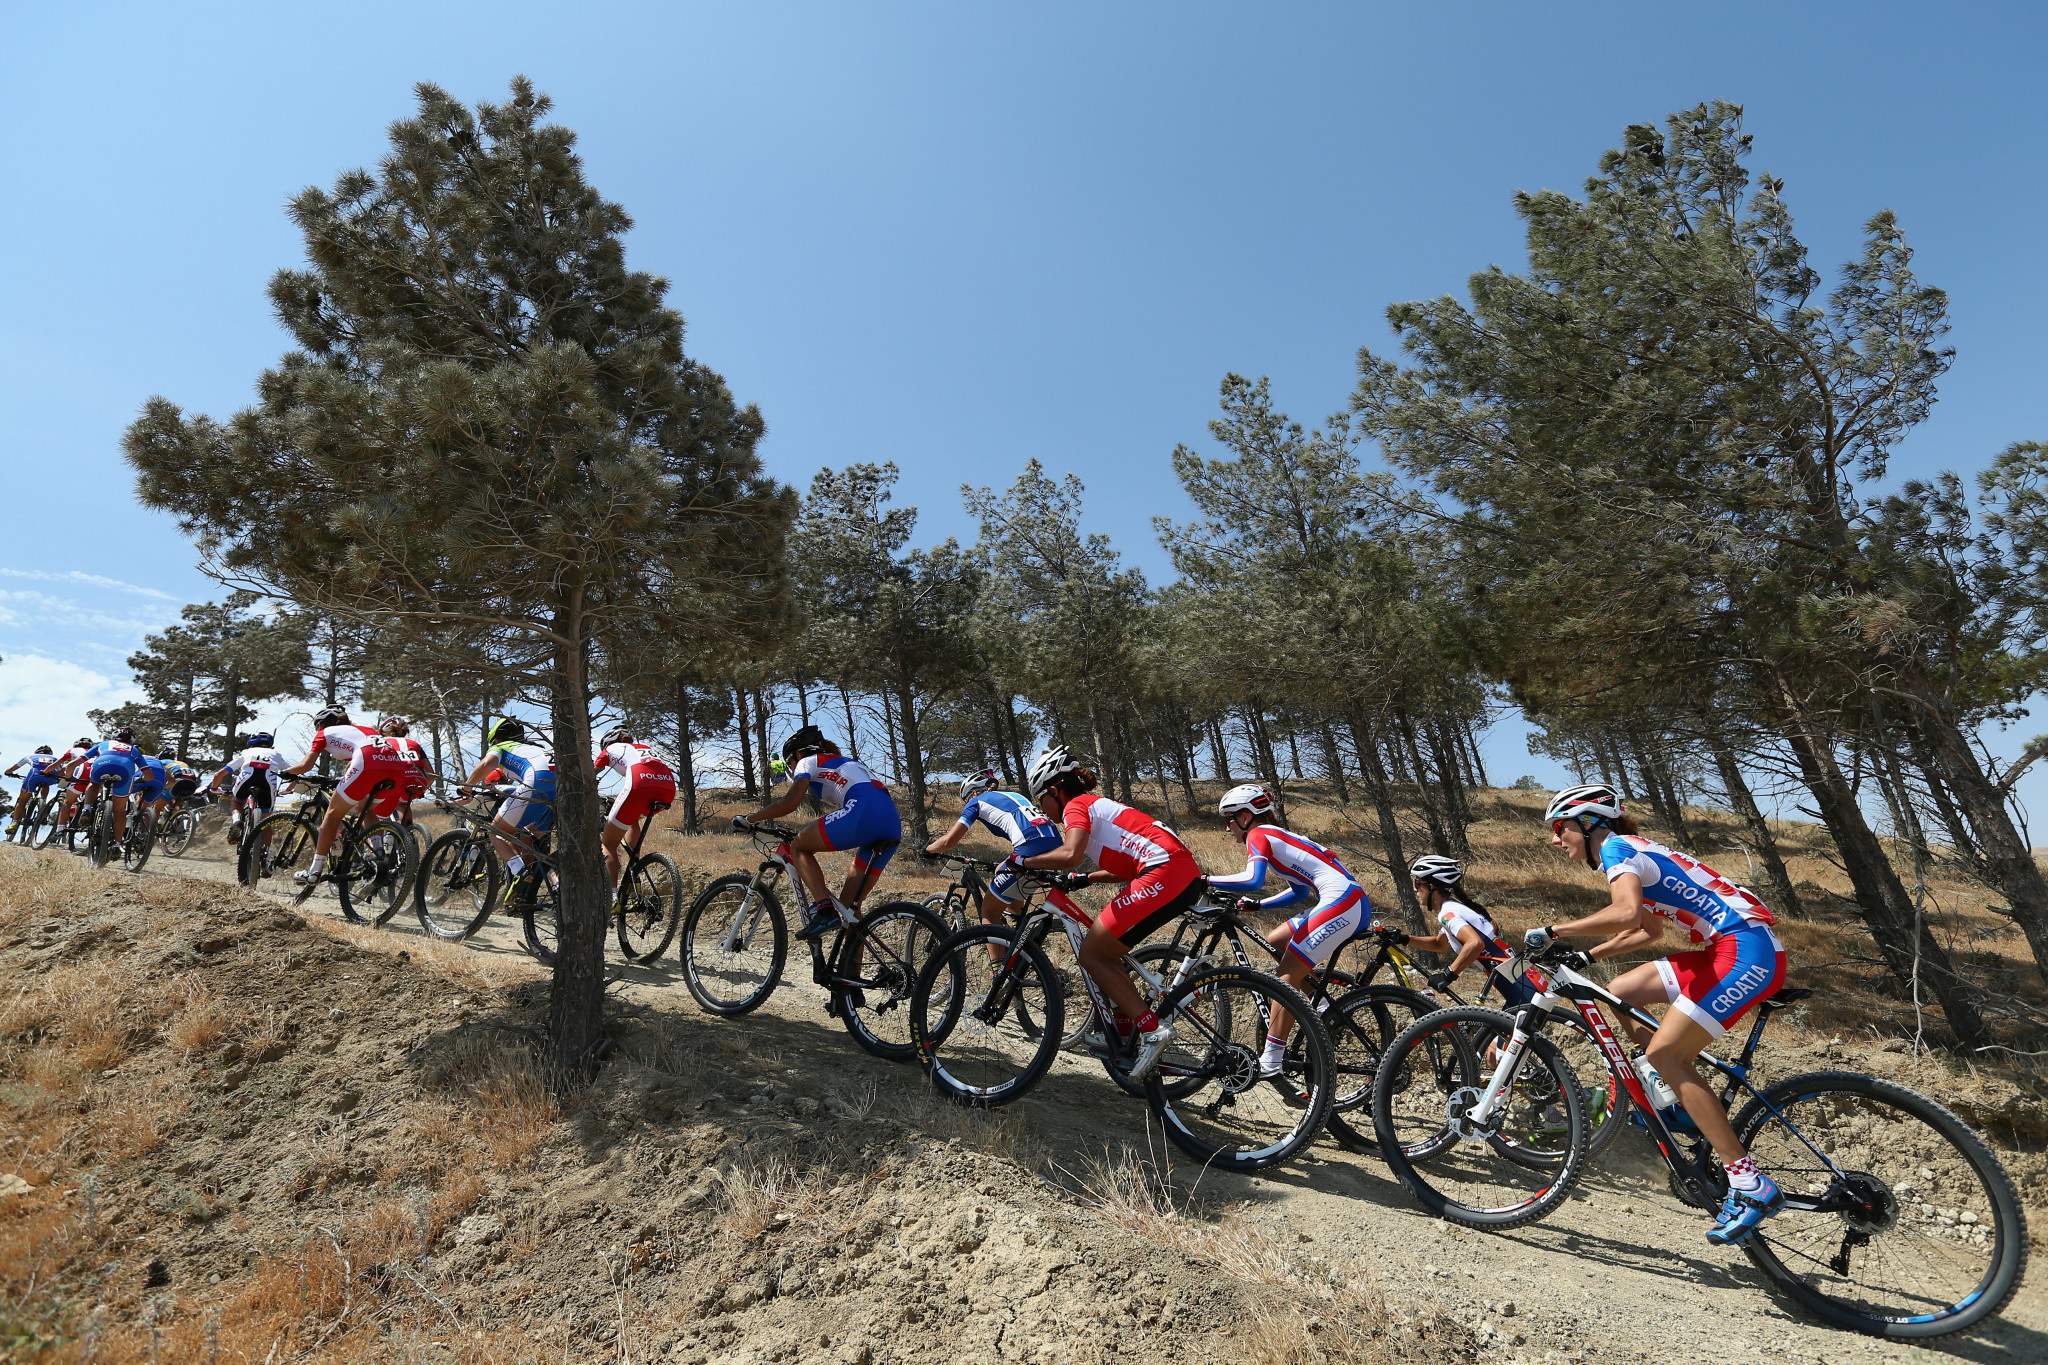 Mountain biking last featured at the European Games in 2015 ©Getty Images